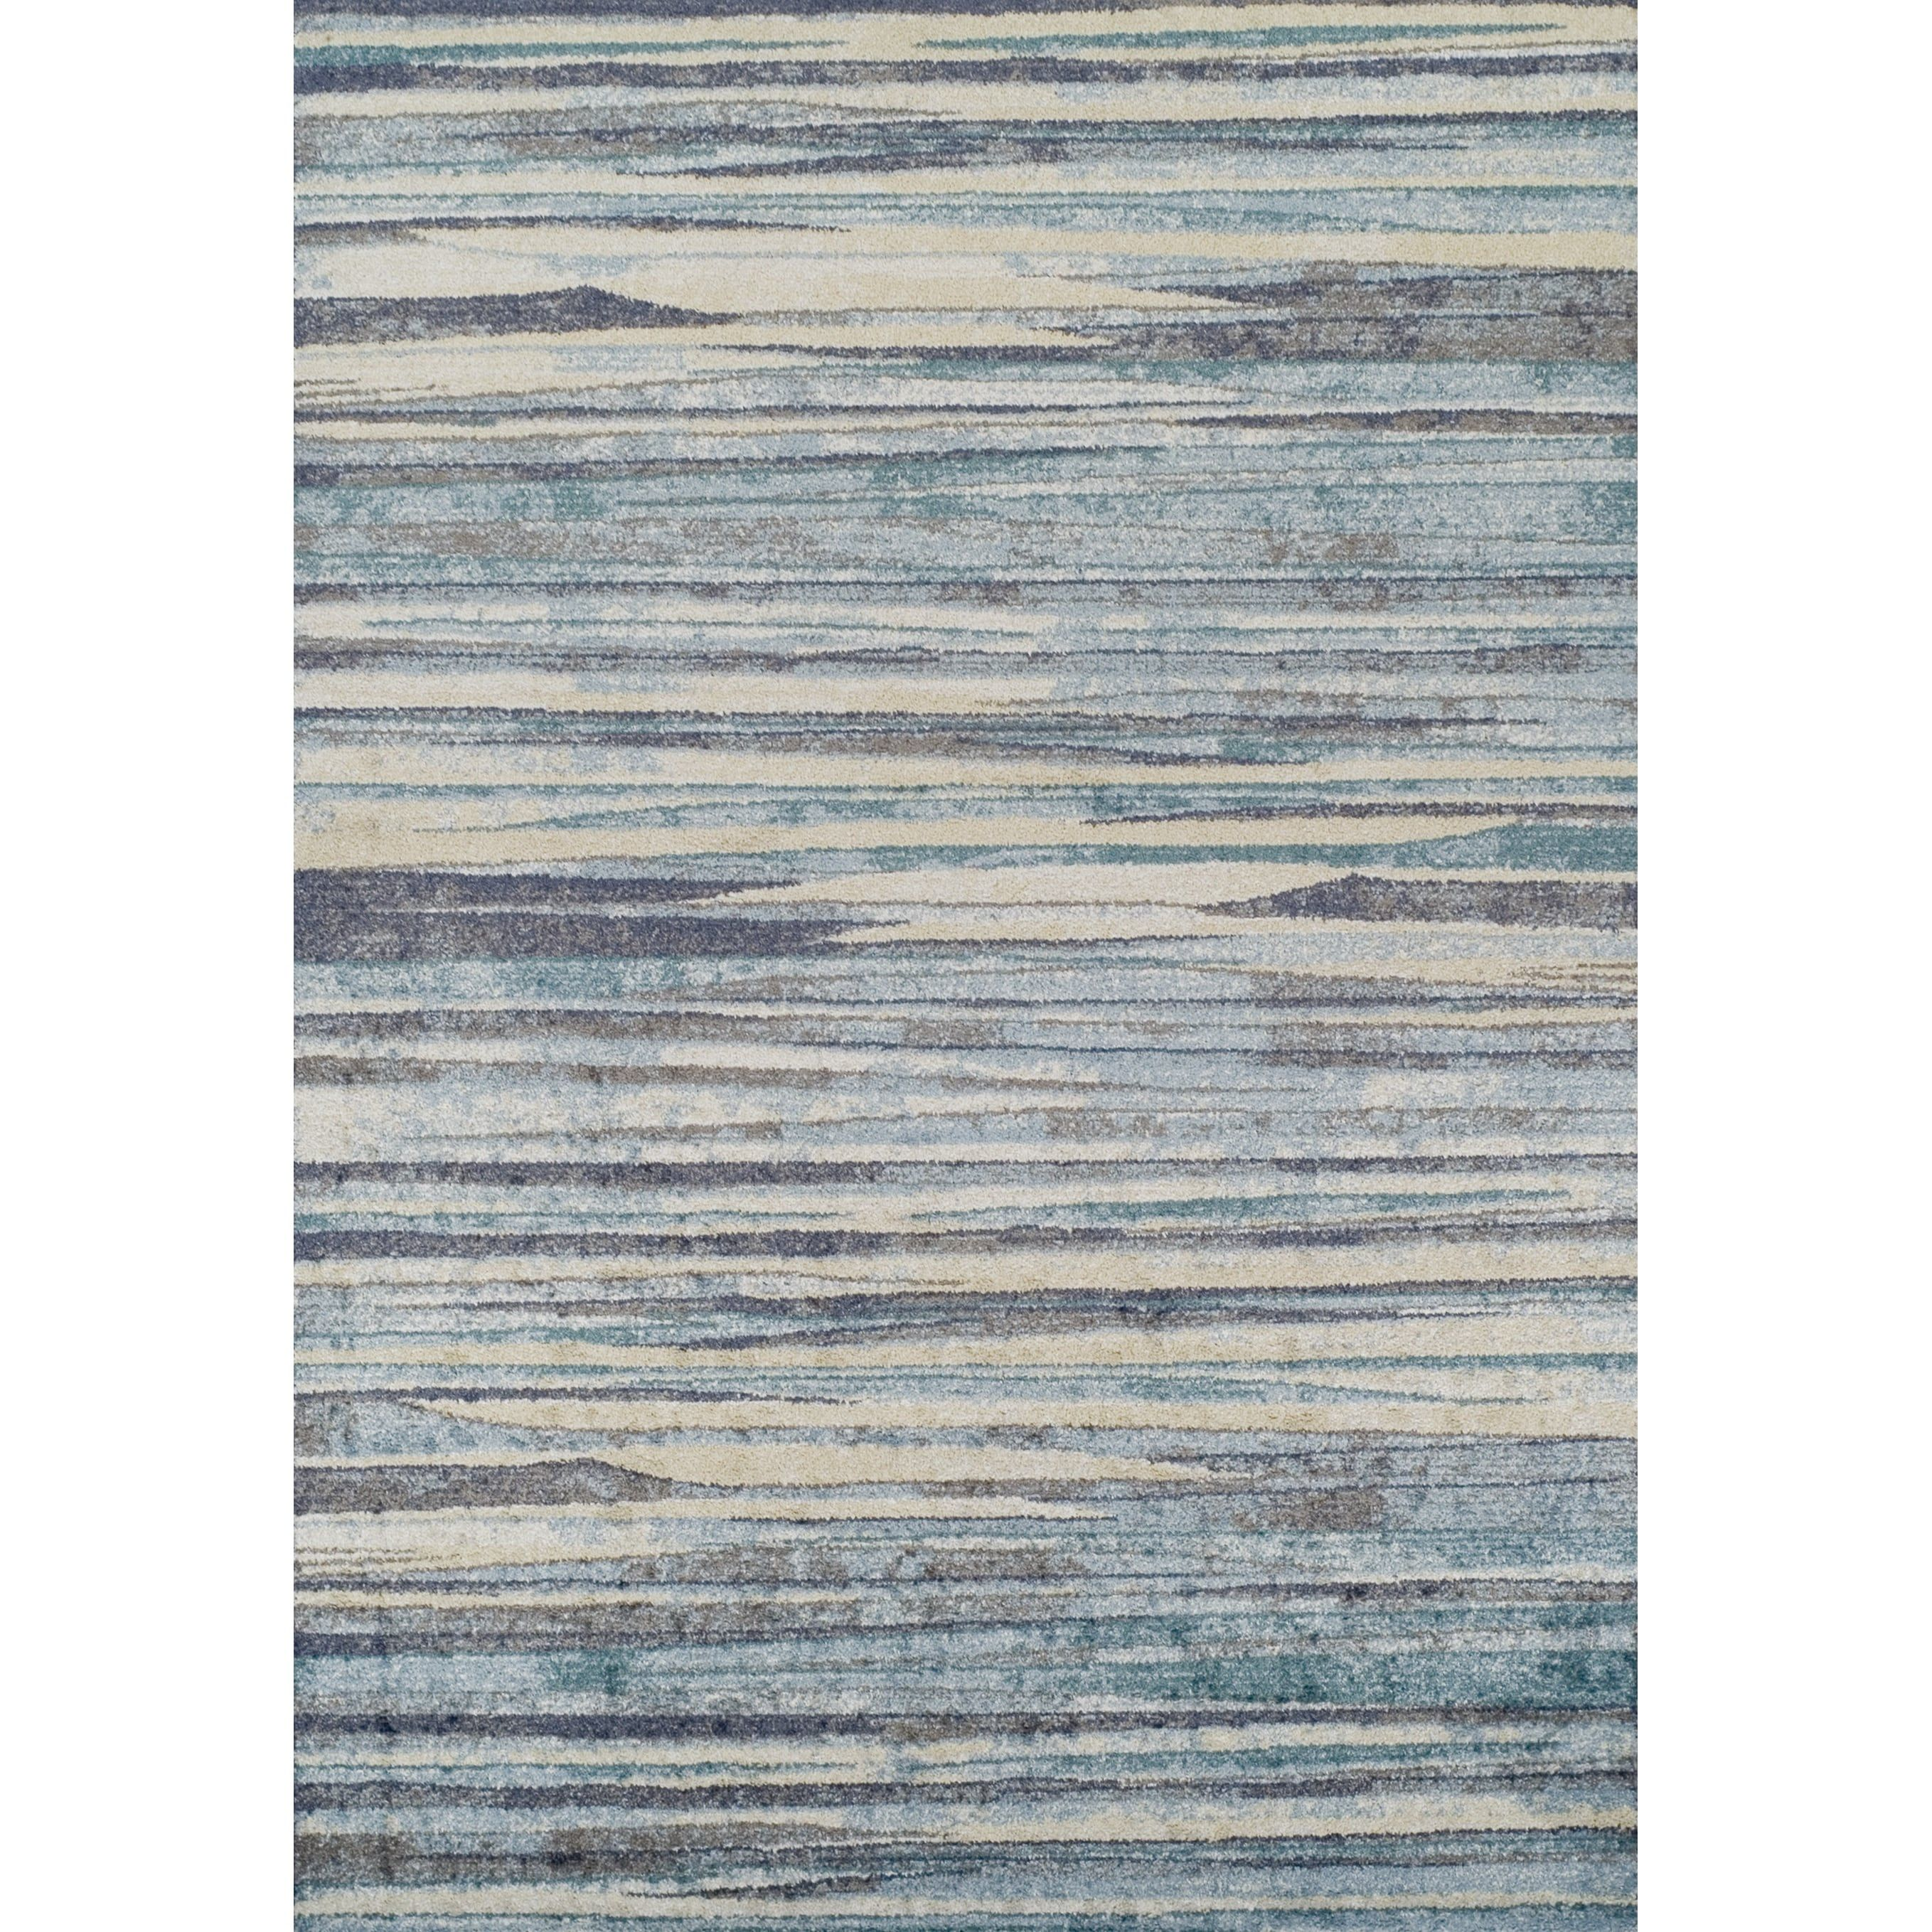 Addison Blair Blue Beige Abstract Striped Area Rug Beige Area Rugs Area Rugs Rugs